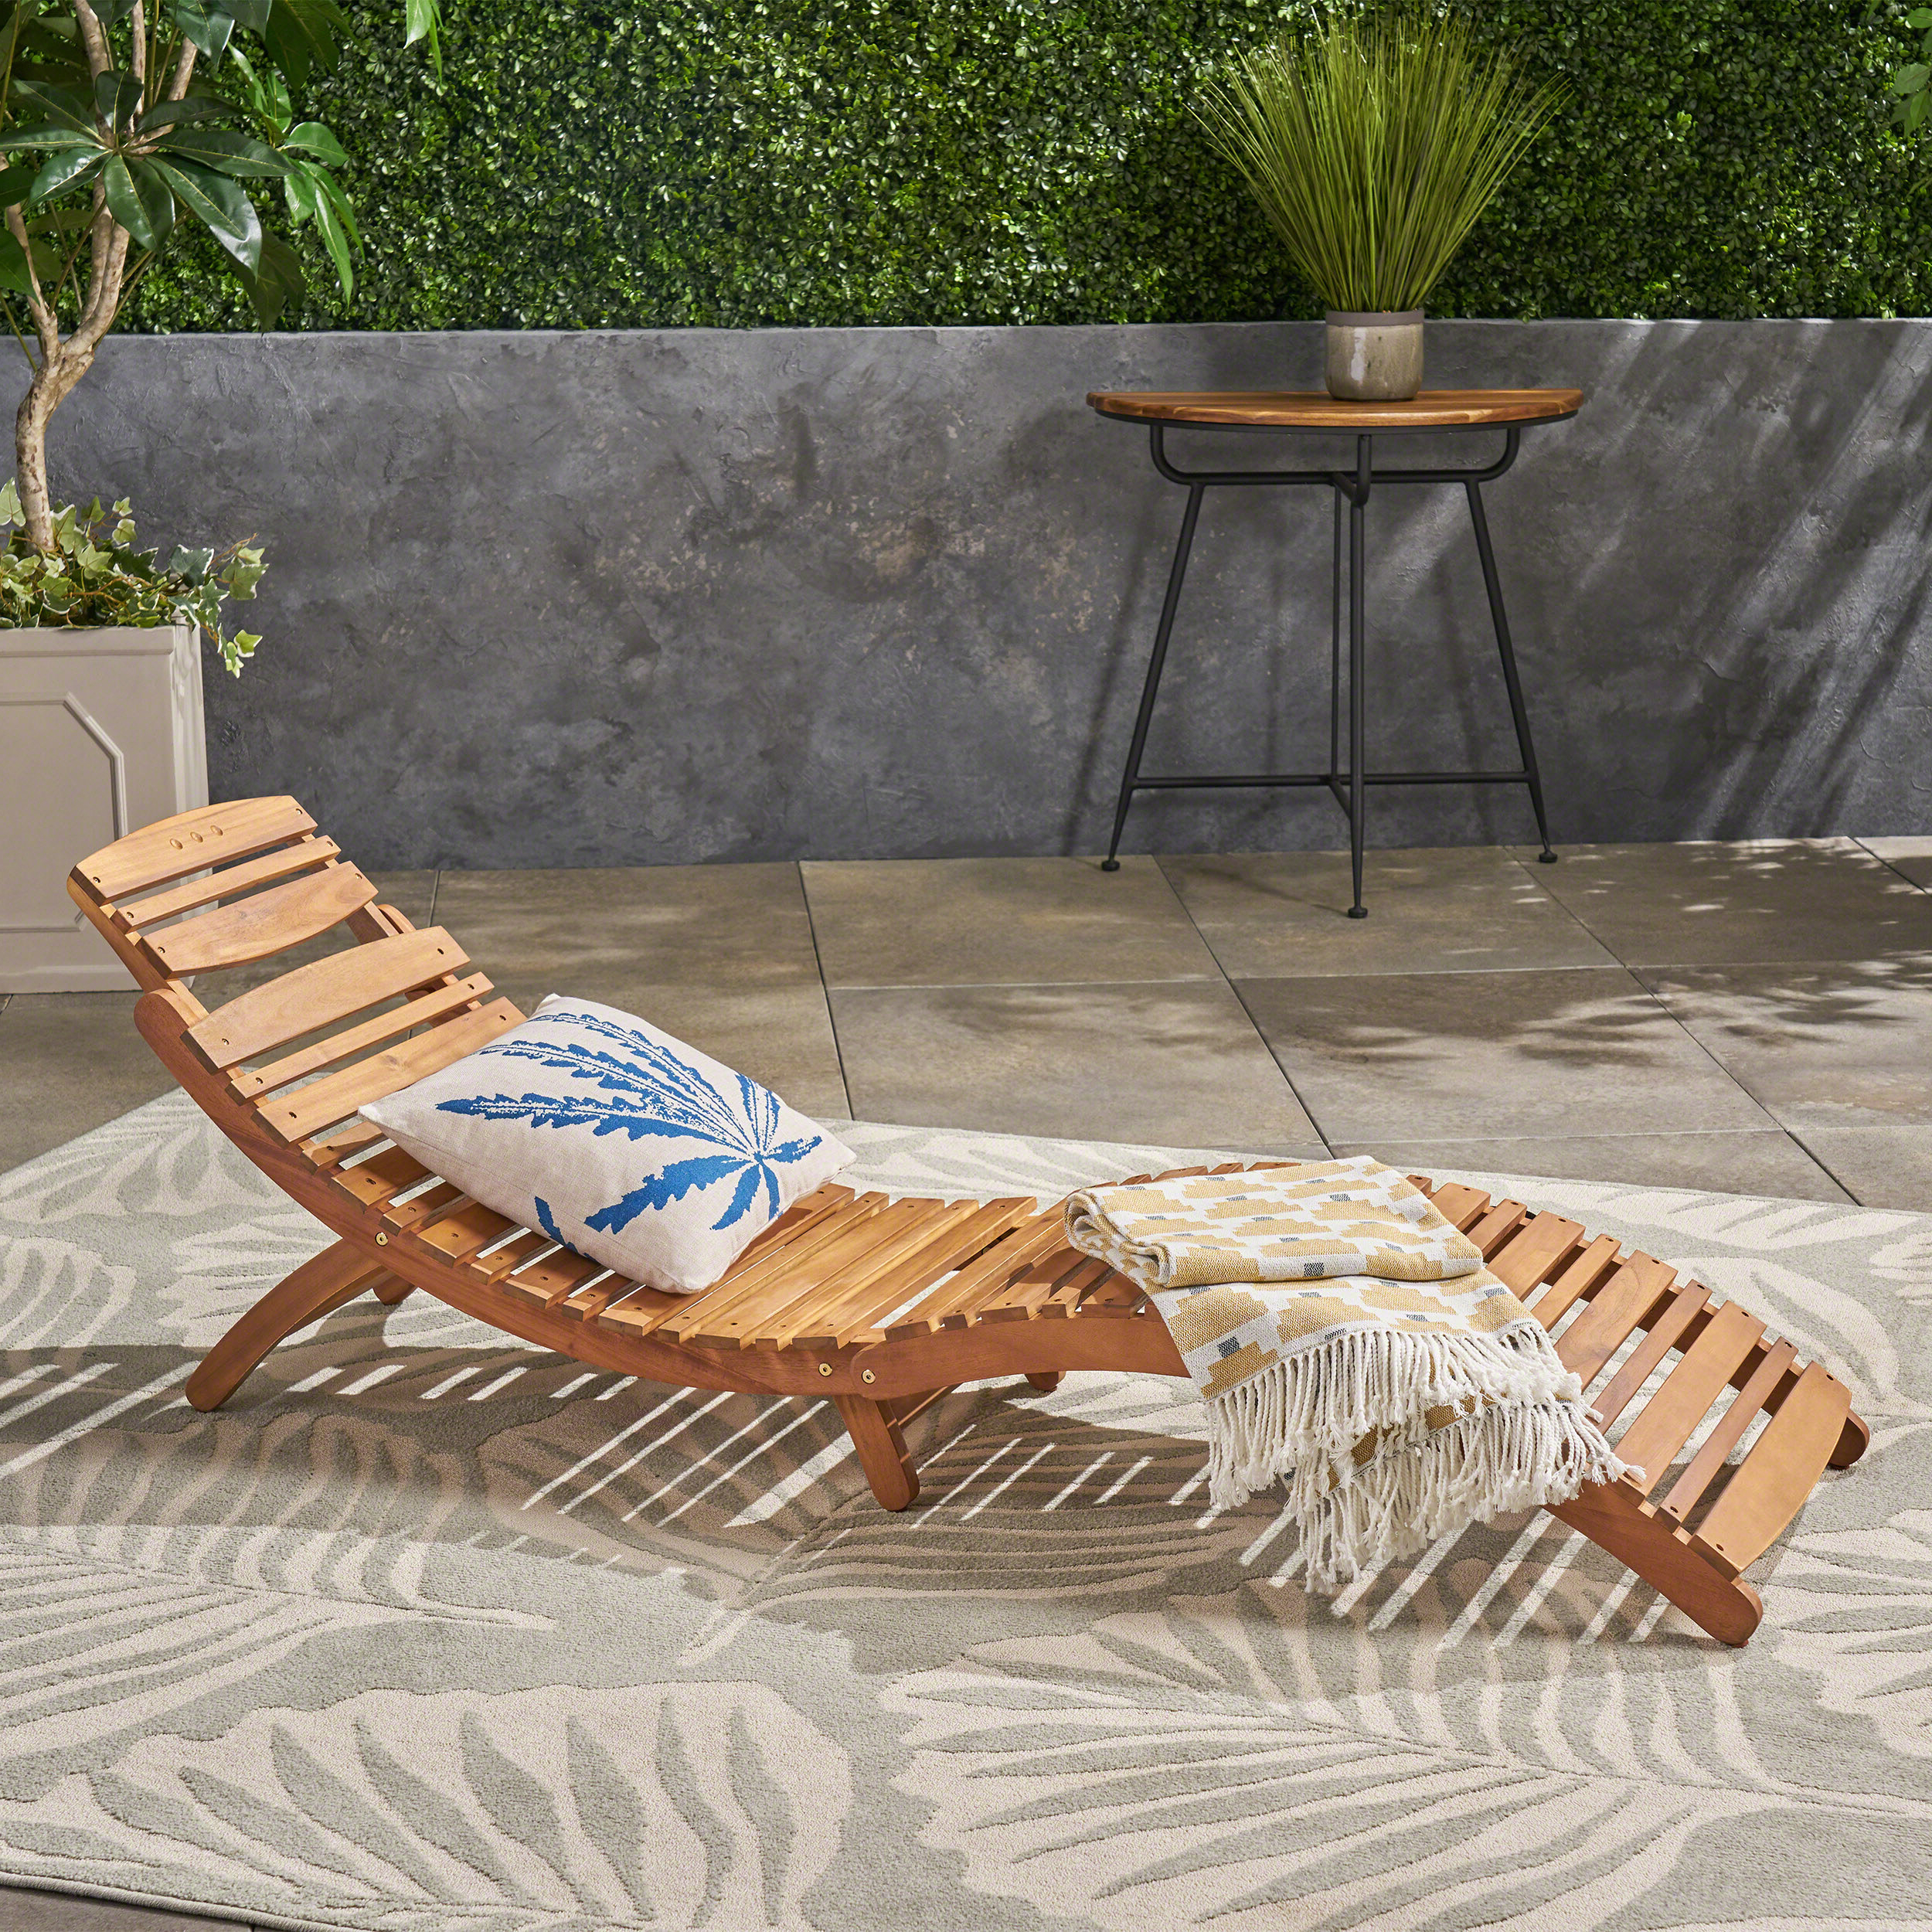 Tifany Wood Outdoor Chaise Lounge Throughout Most Popular Curved Folding Chaise Loungers (View 11 of 25)